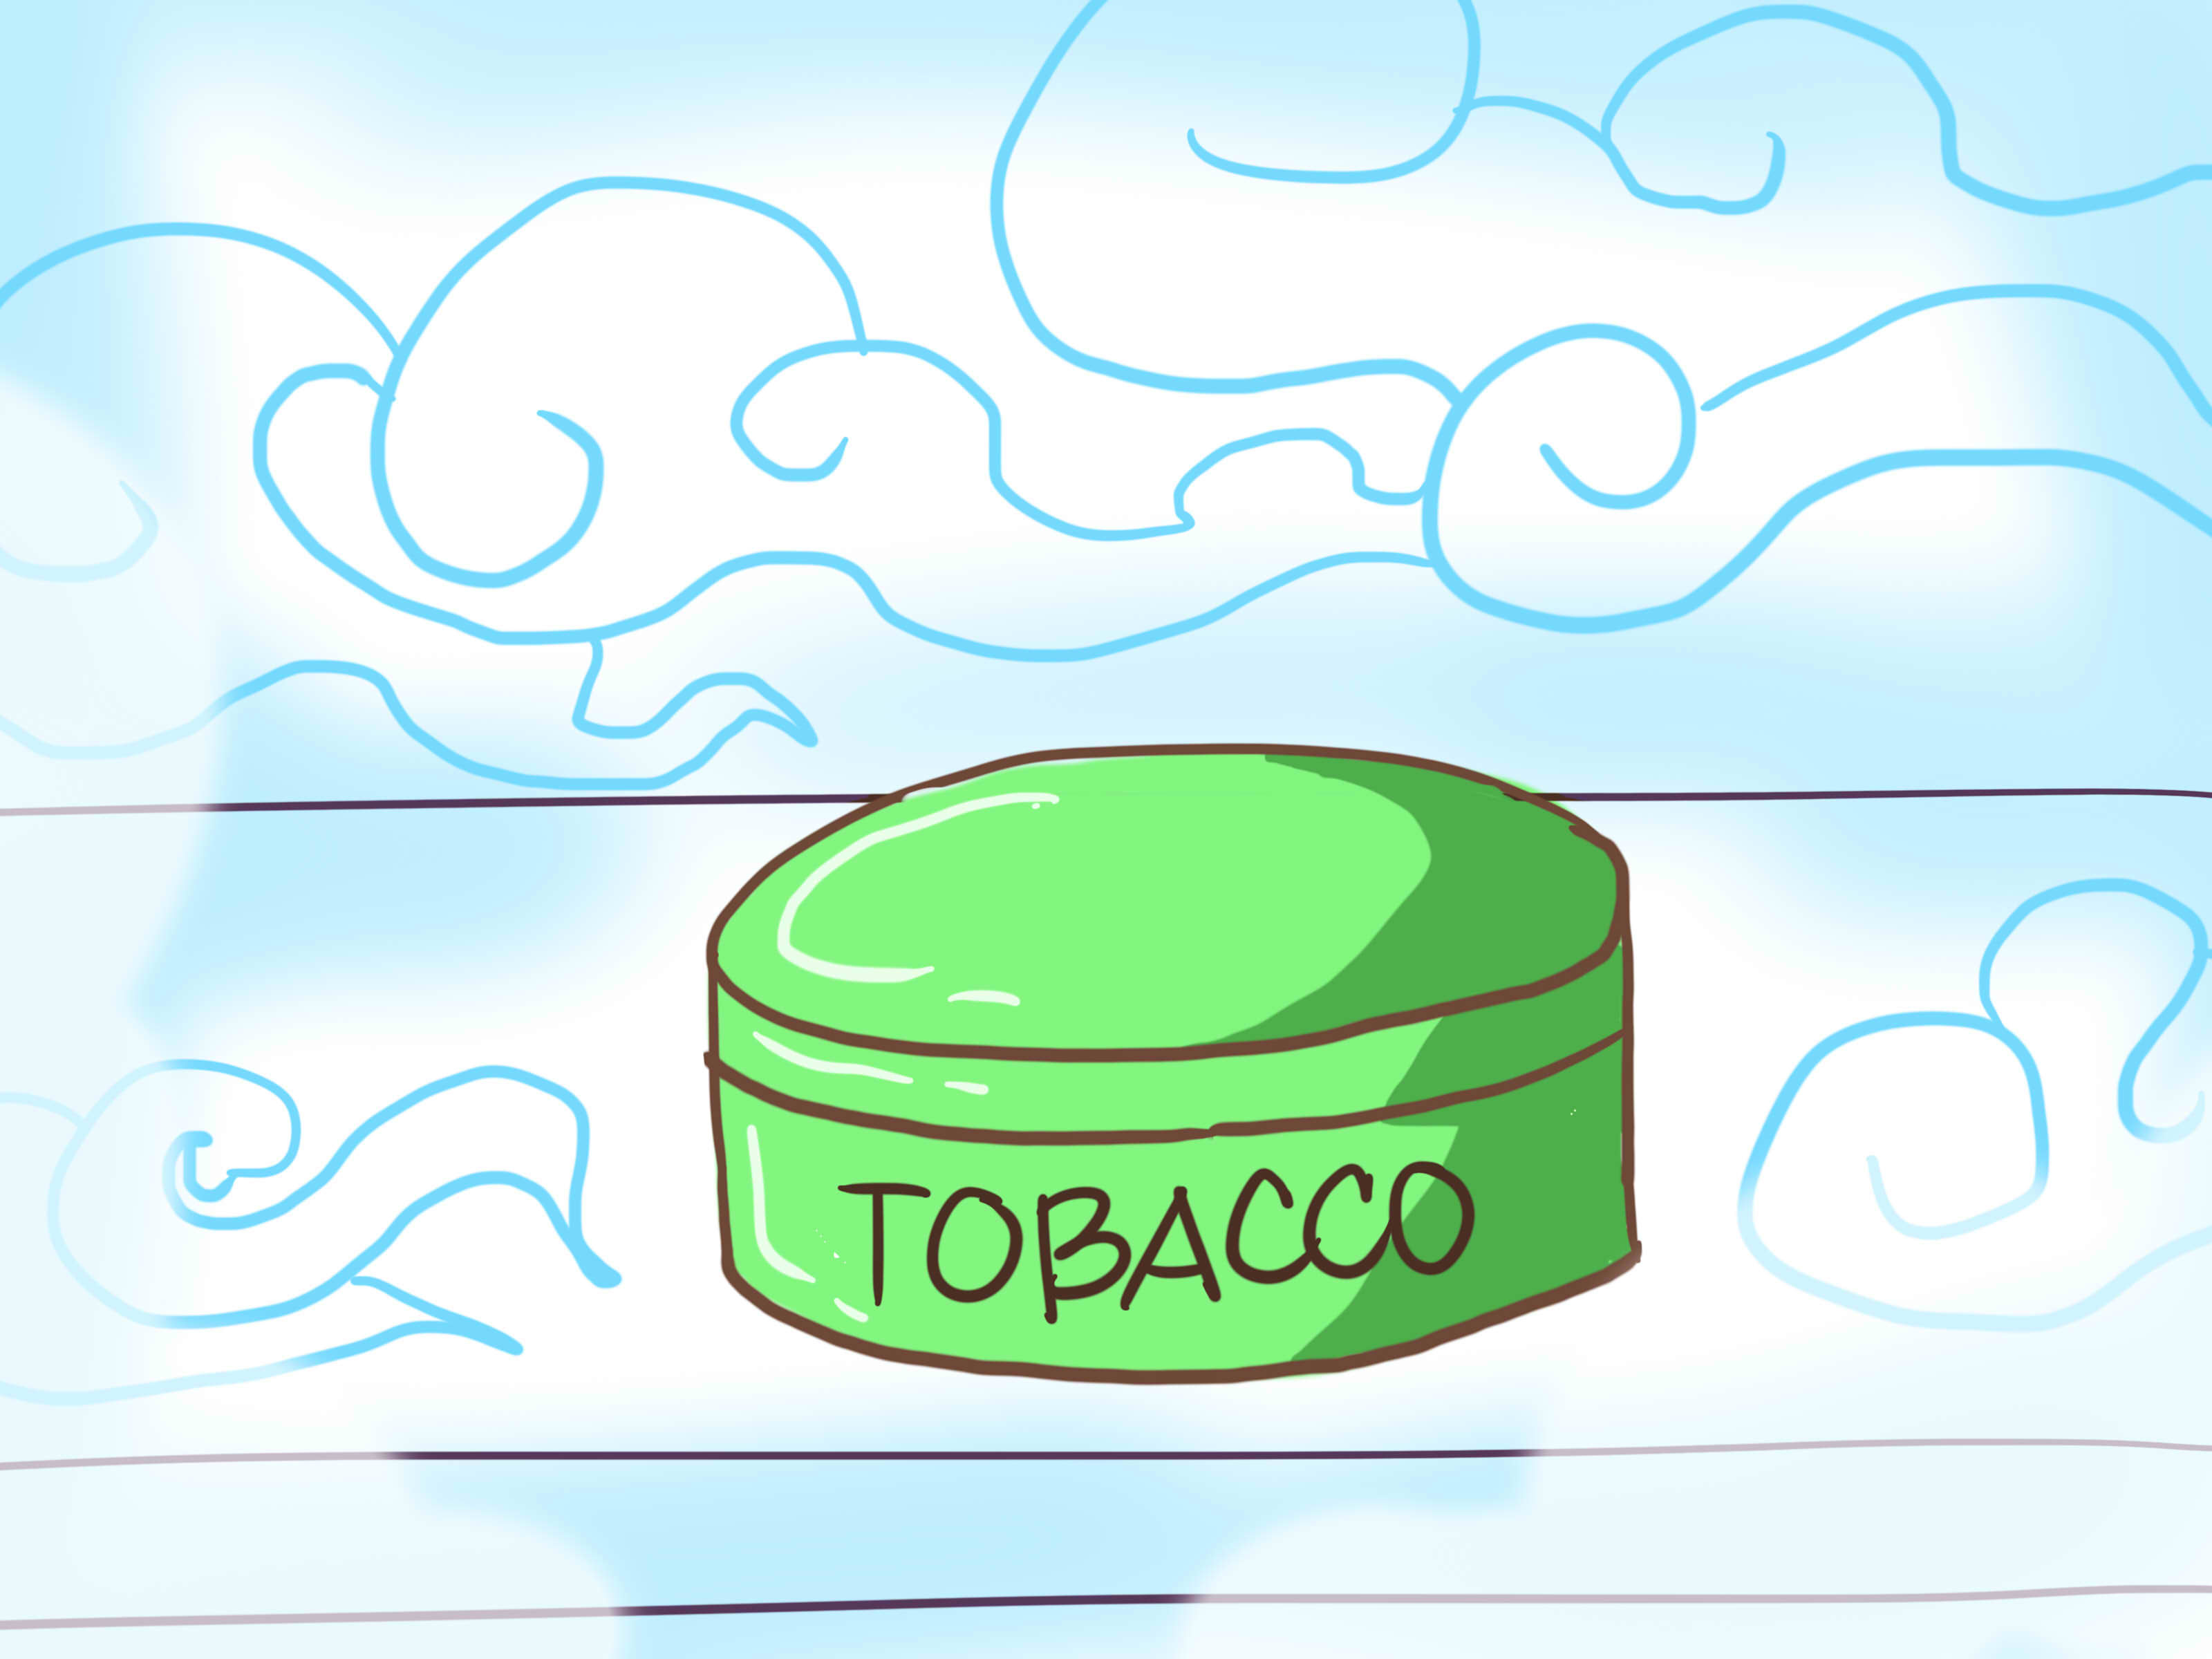 Chewing tobacco clipart #2